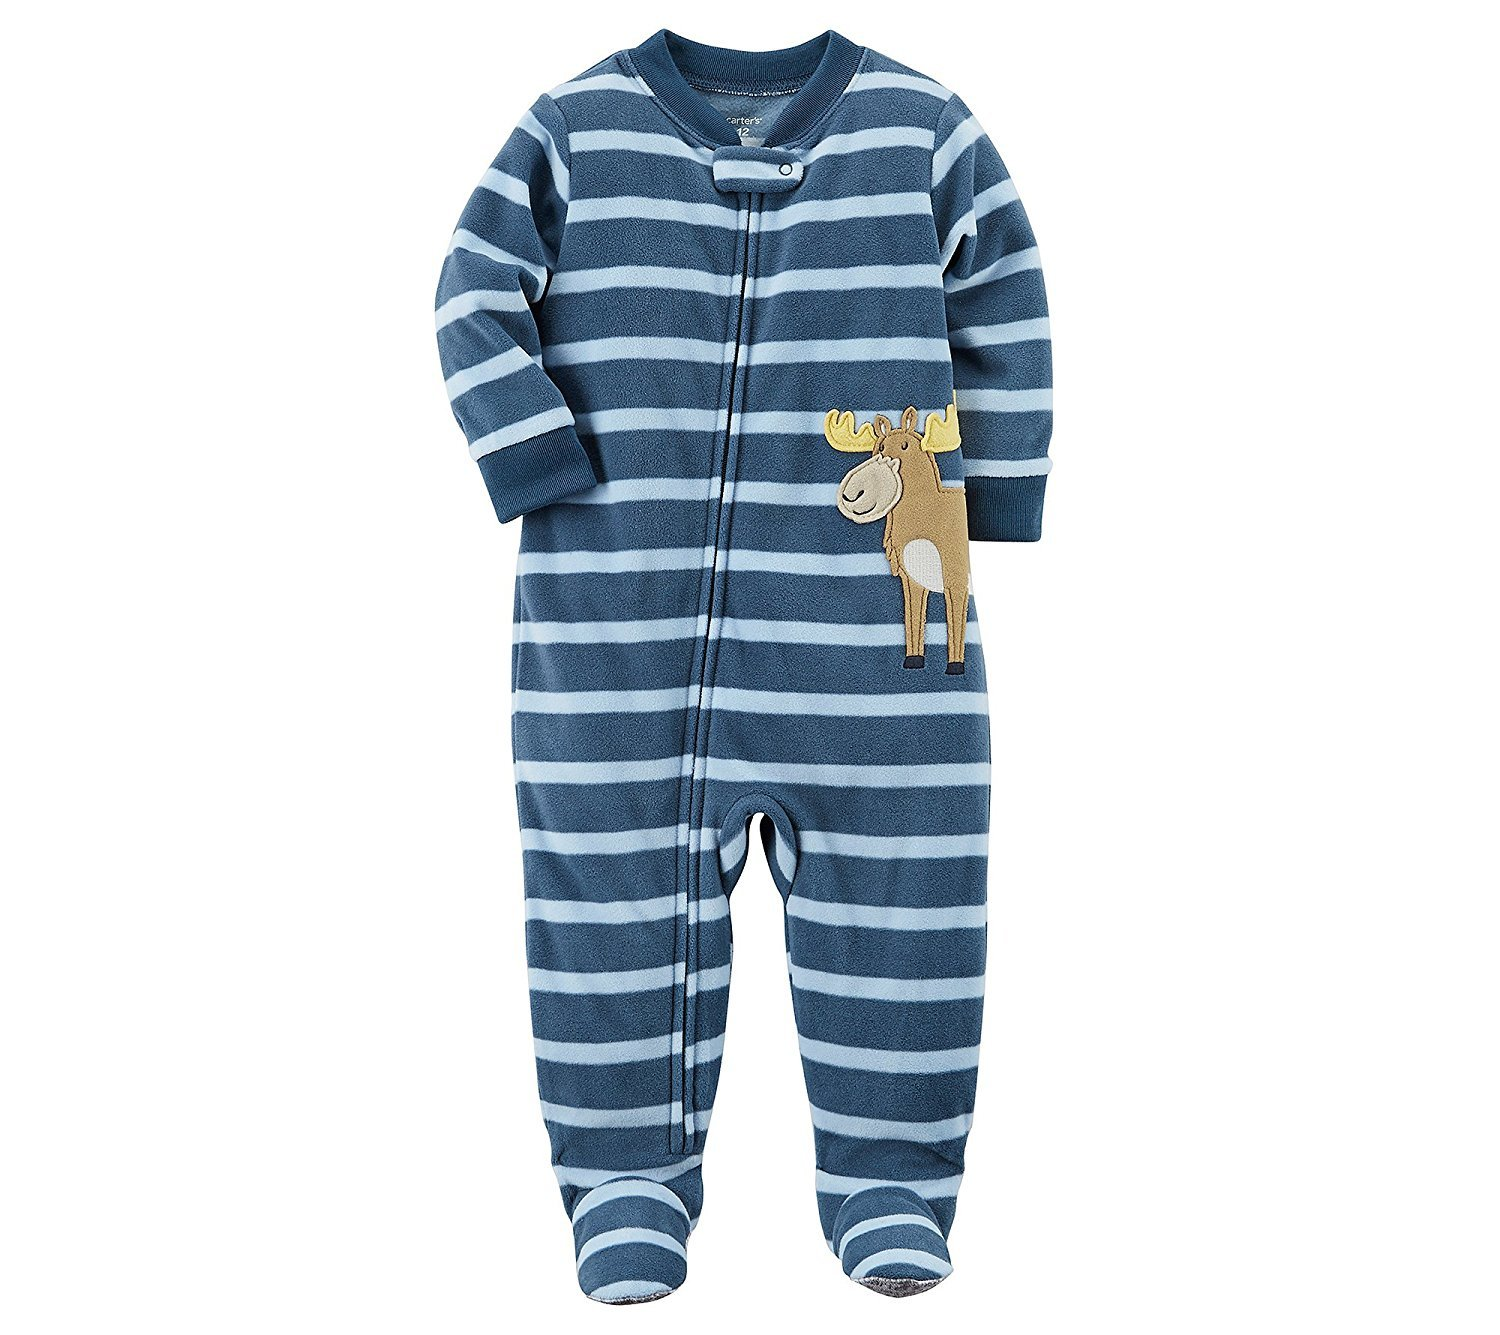 64c3a7566333 Galleon - Carter s Baby Boys  One Piece Moose Fleece Pajamas 6 Months